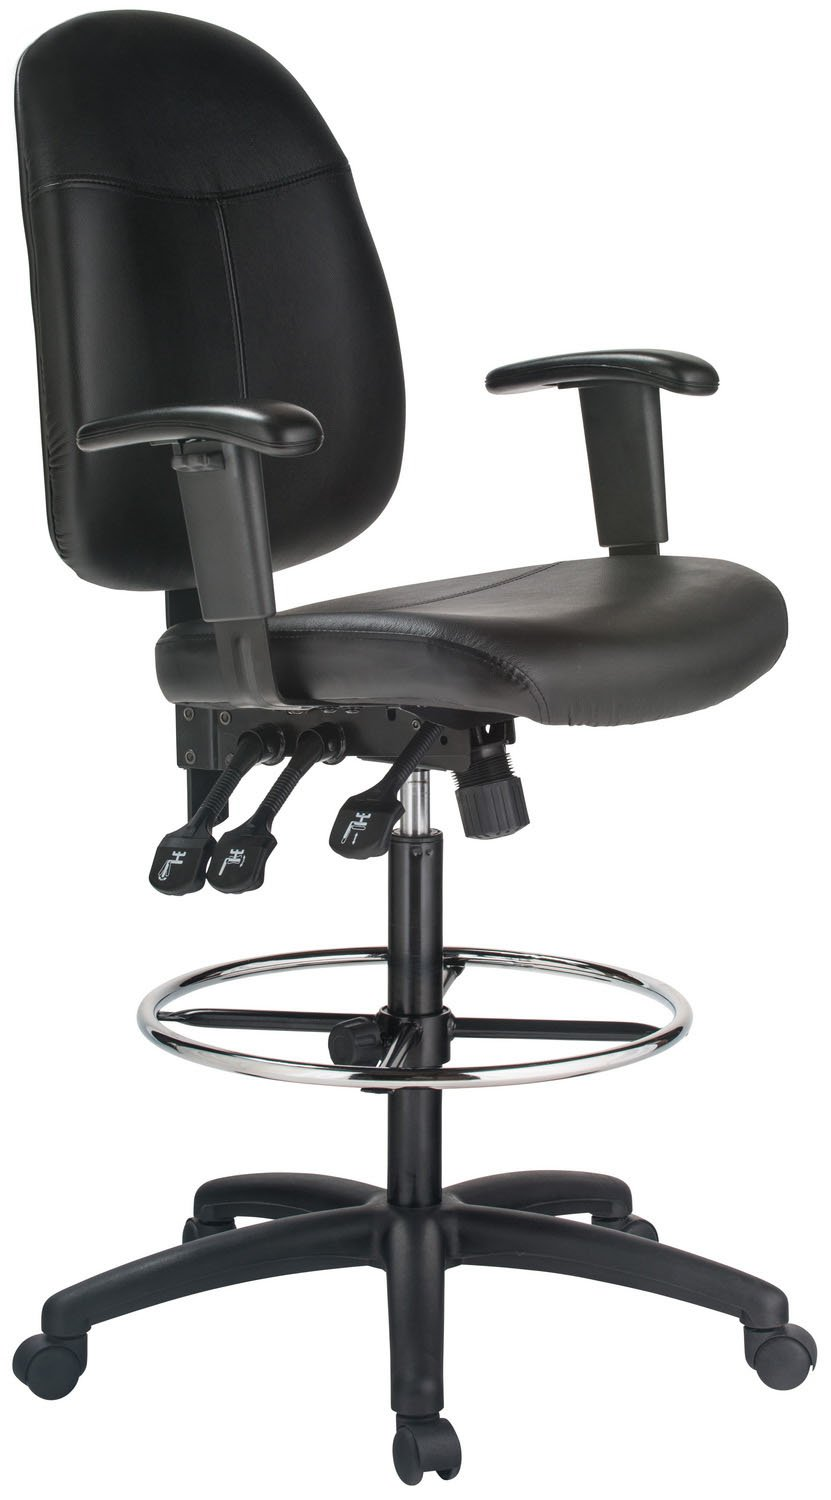 Extra Tall Ergonomic Leather Drafting Chair Black/Black